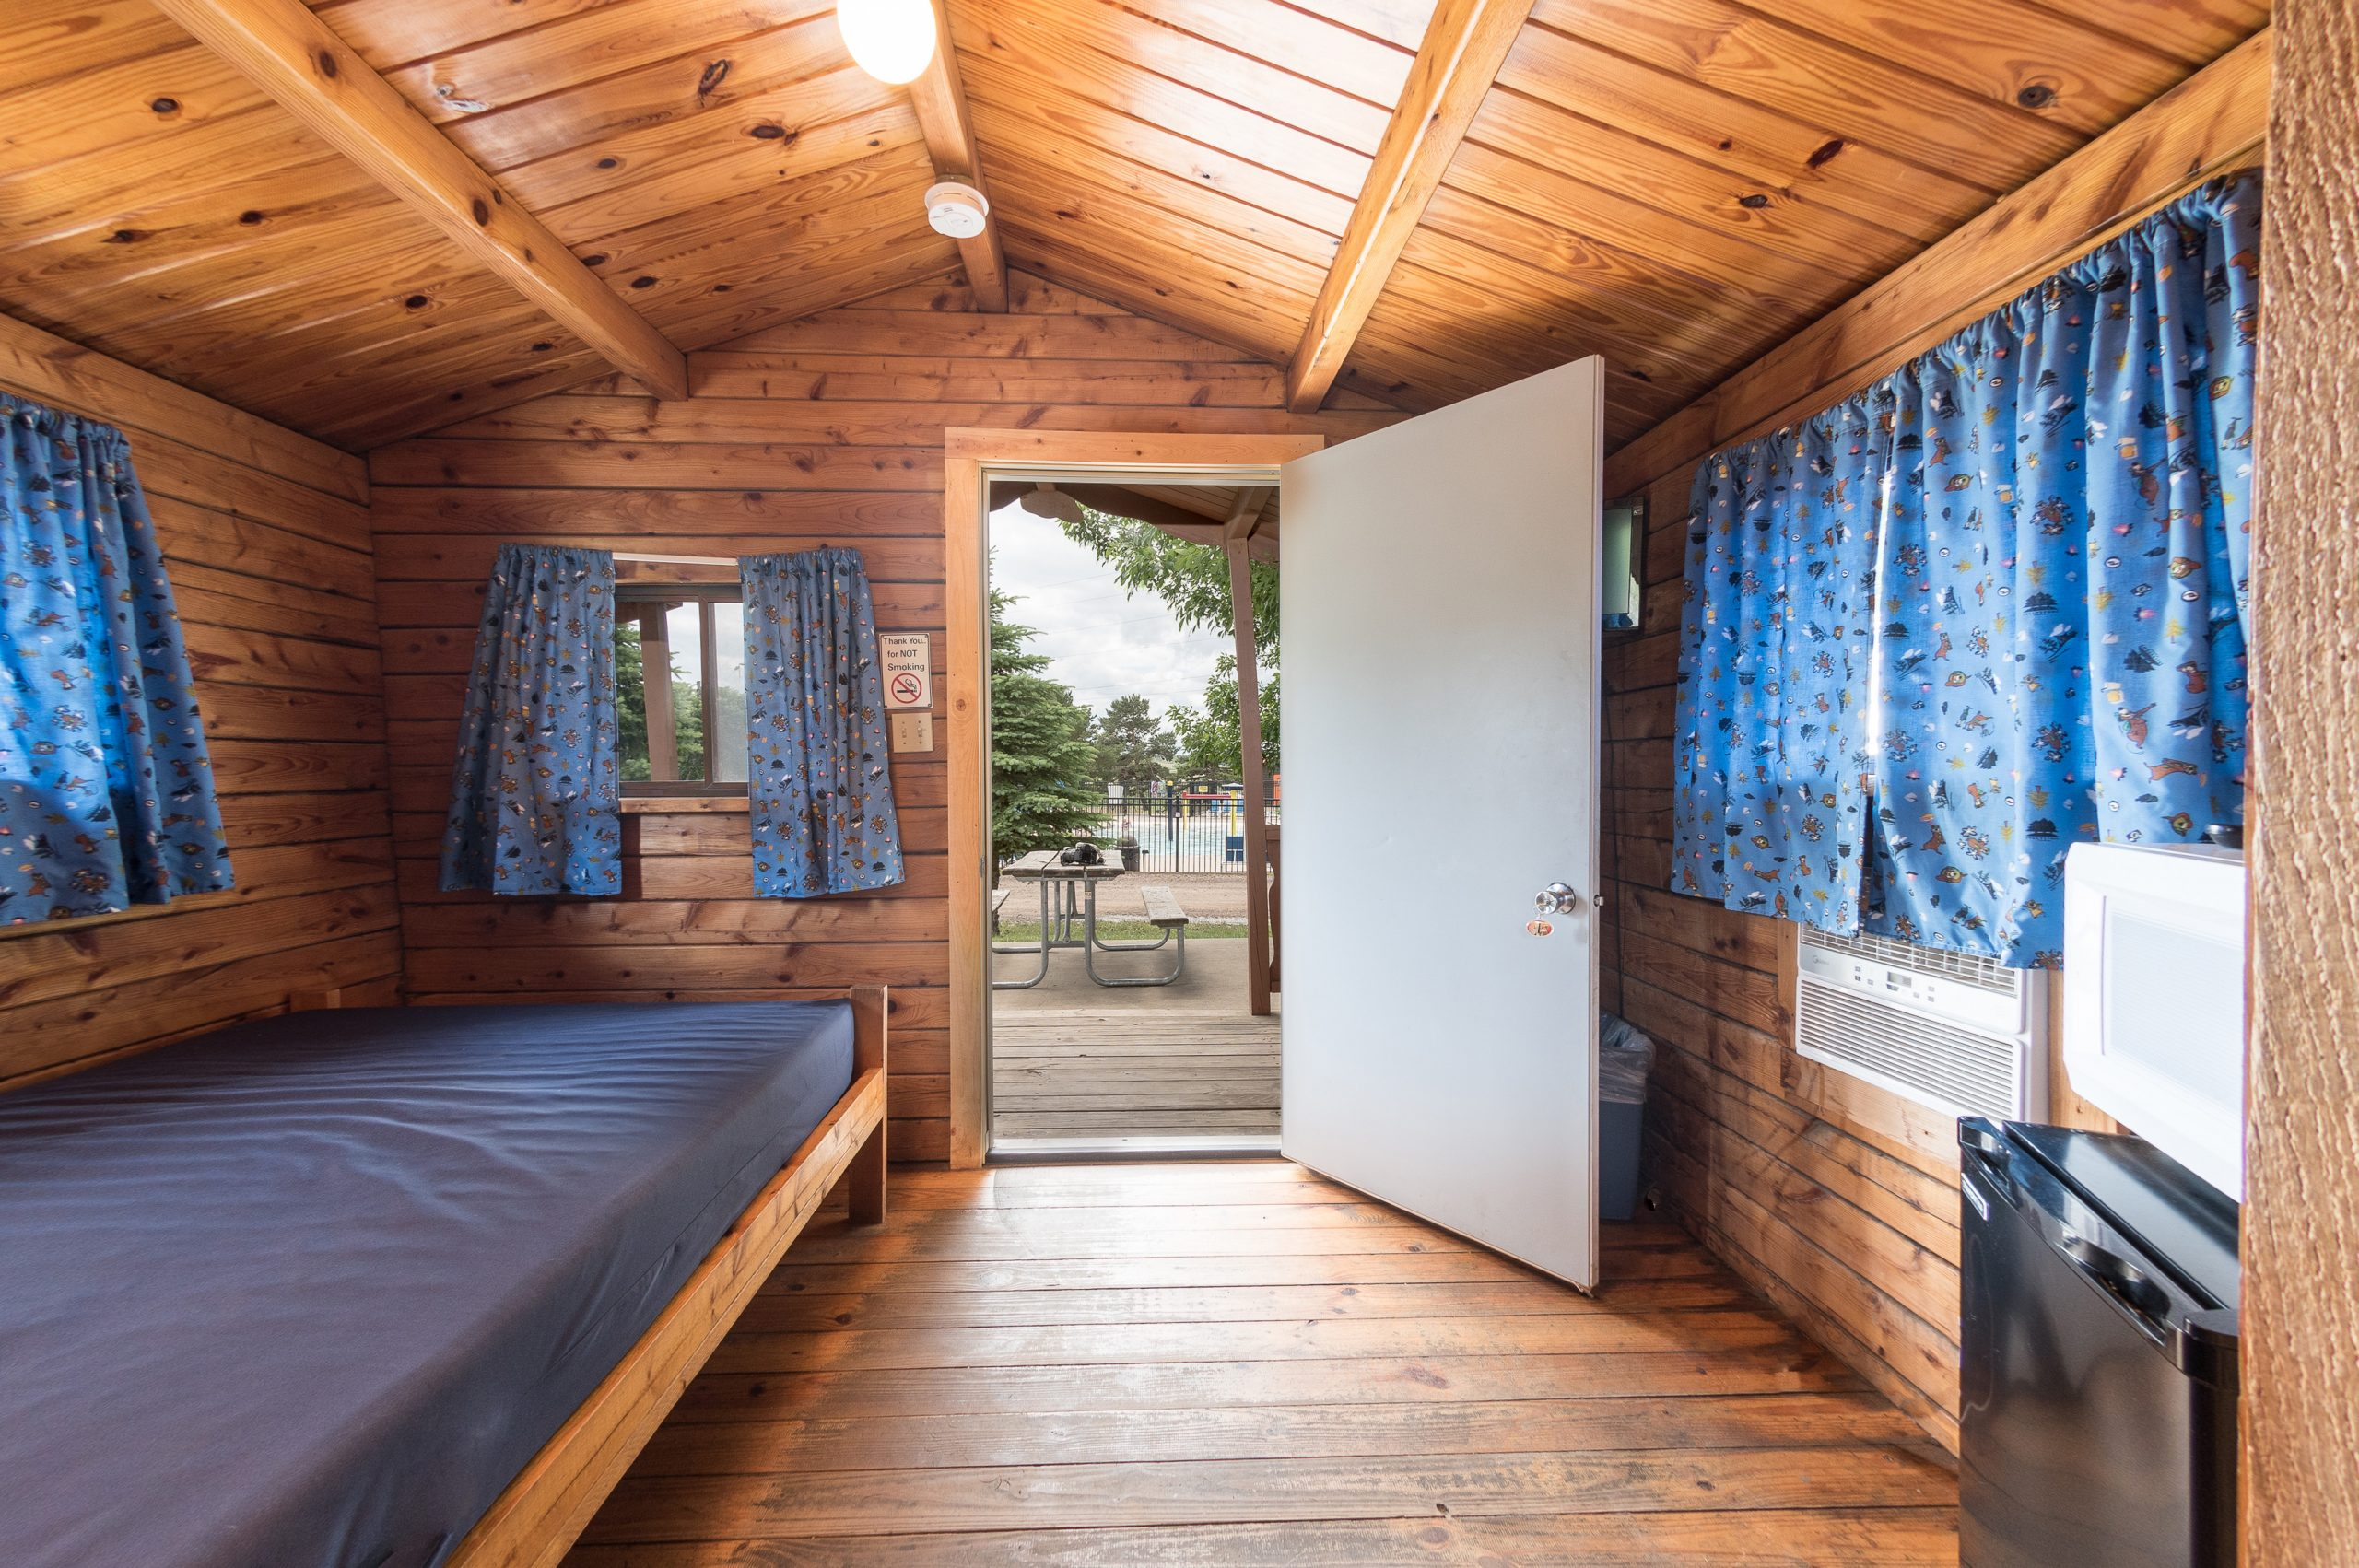 Interior of rustic cabin, front room with full size bed, refridgerator and microwave